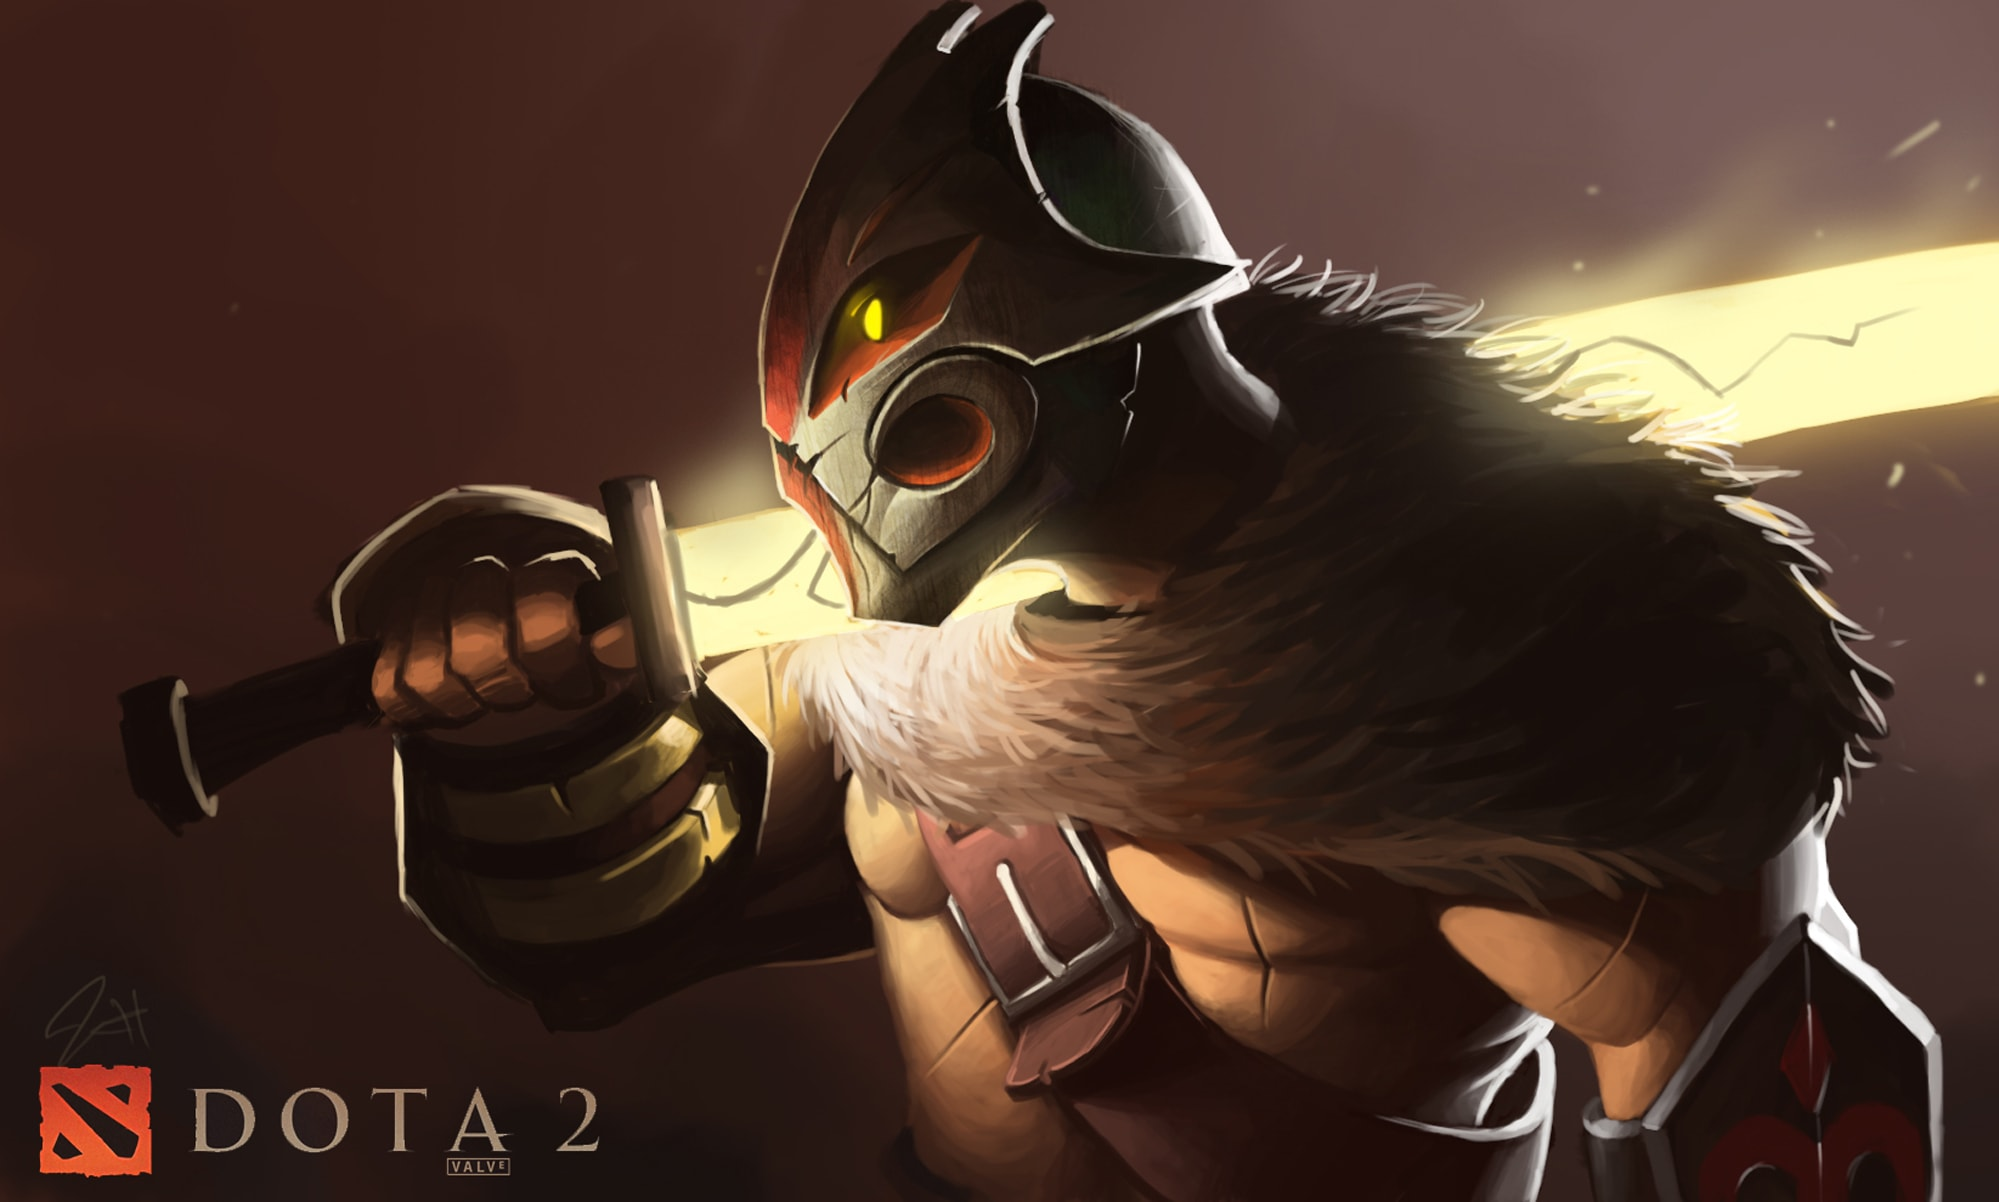 Dota2 : Juggernaut Desktop wallpapers